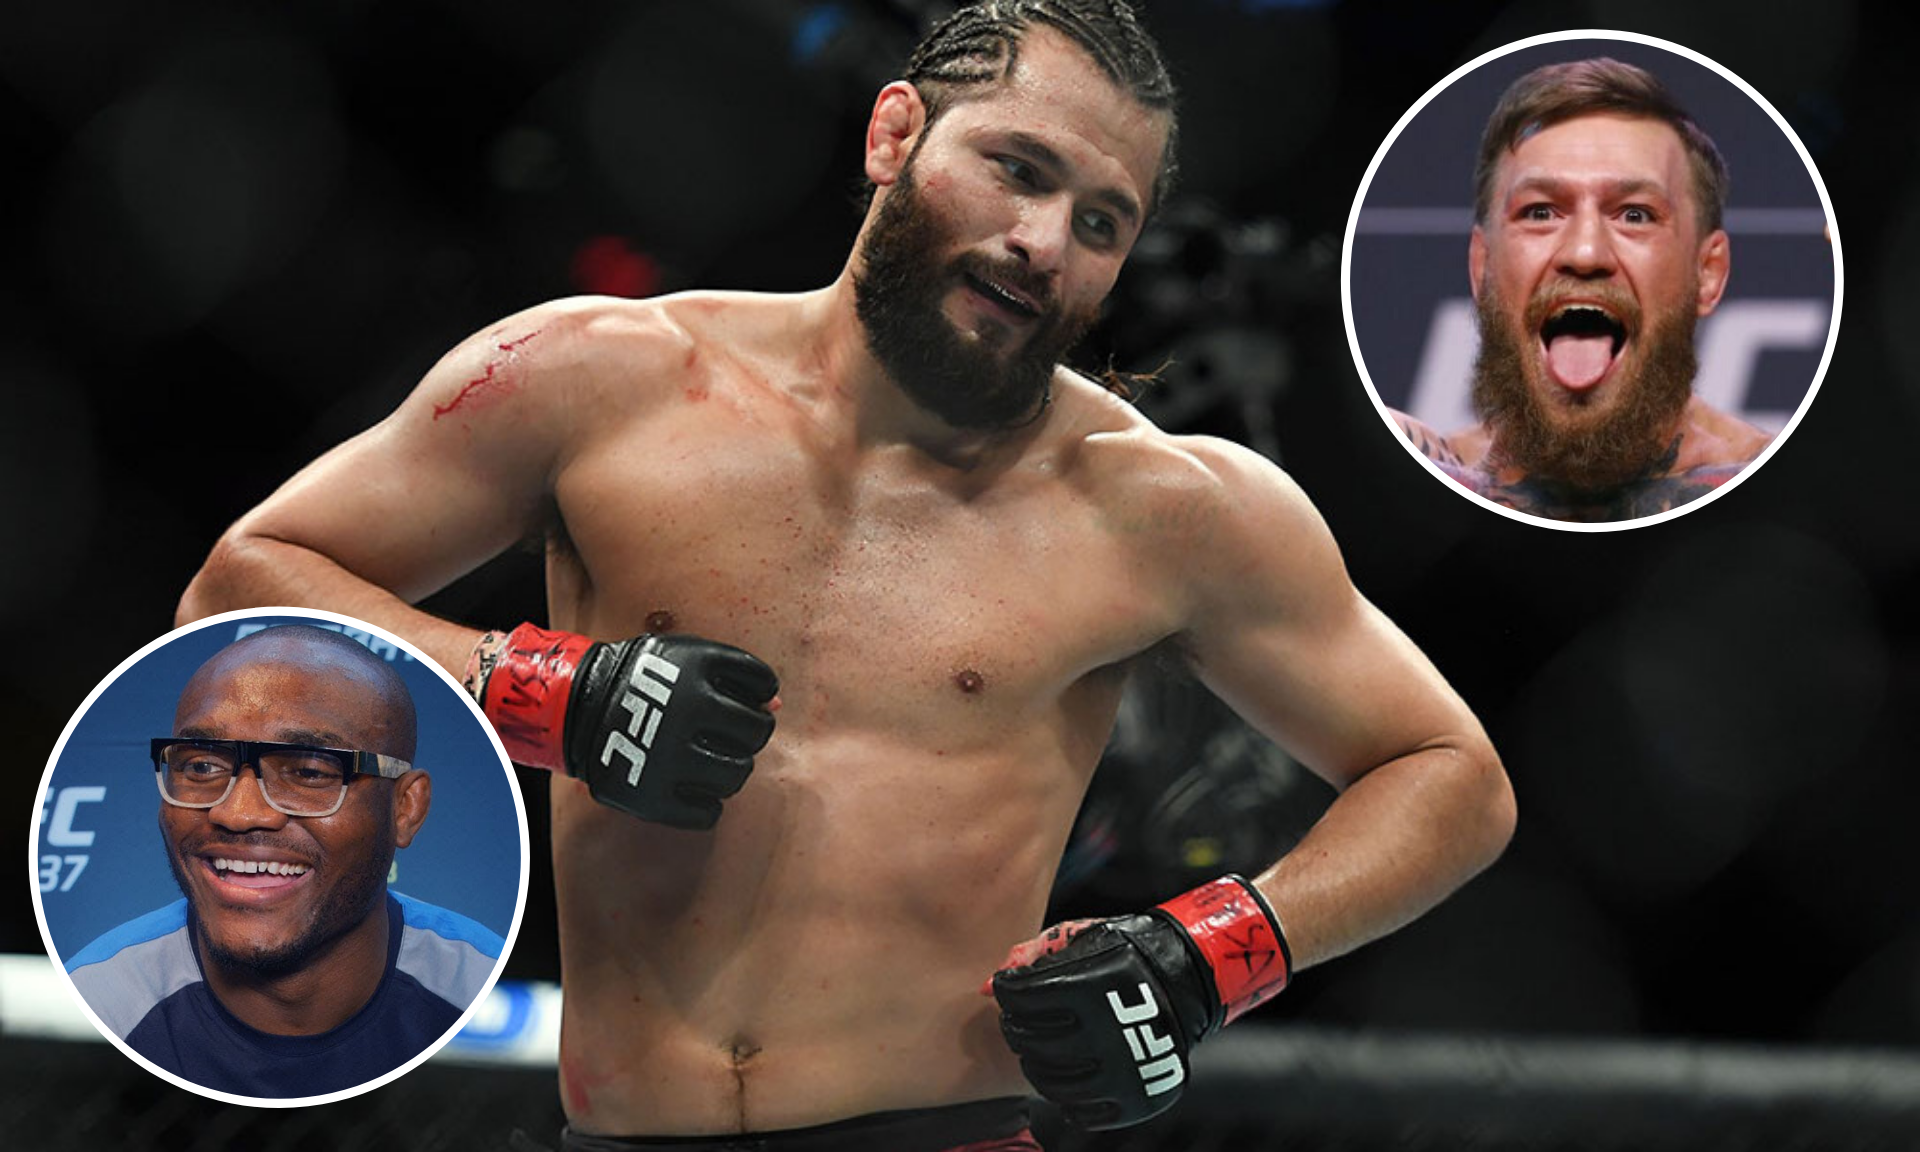 UFC News: Jorge Masavidal claims he wants Conor McGregor fight ahead of title bout against Kamaru Usman - Masvidal